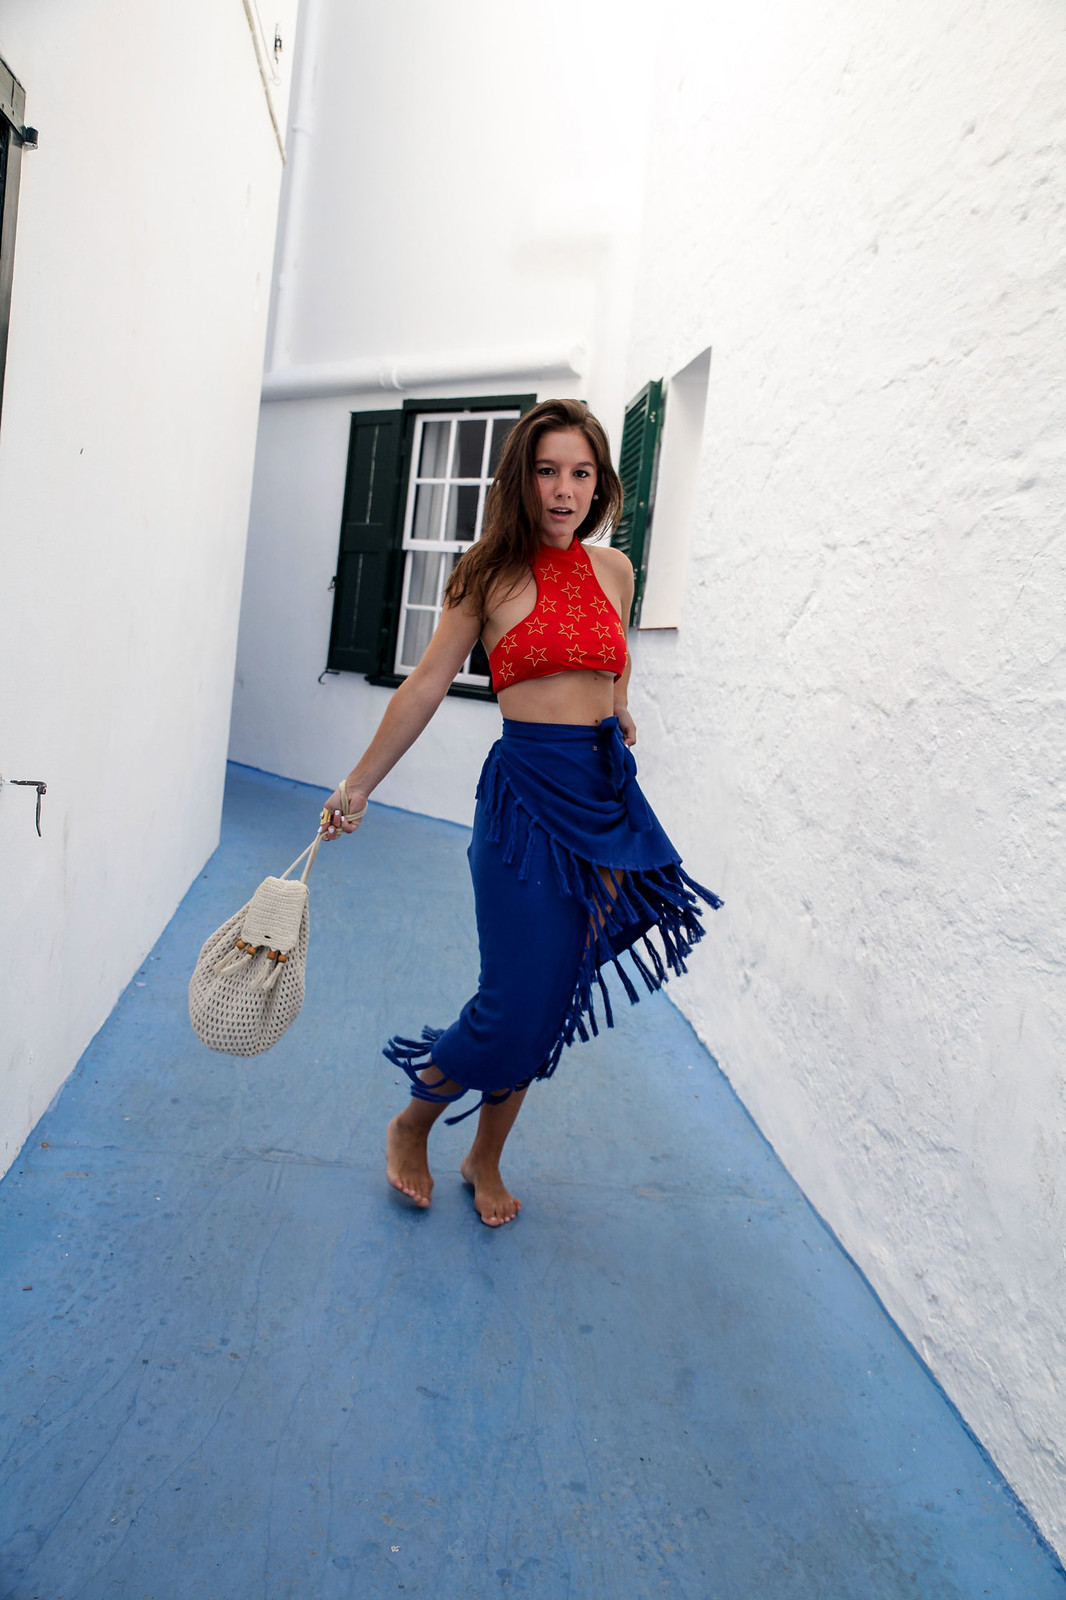 07_pies_descalzos_look_playa_theguestgirl_ruga_beachriot_minorca_blue_red_the_guest_girl_laura_santolaria_influencer